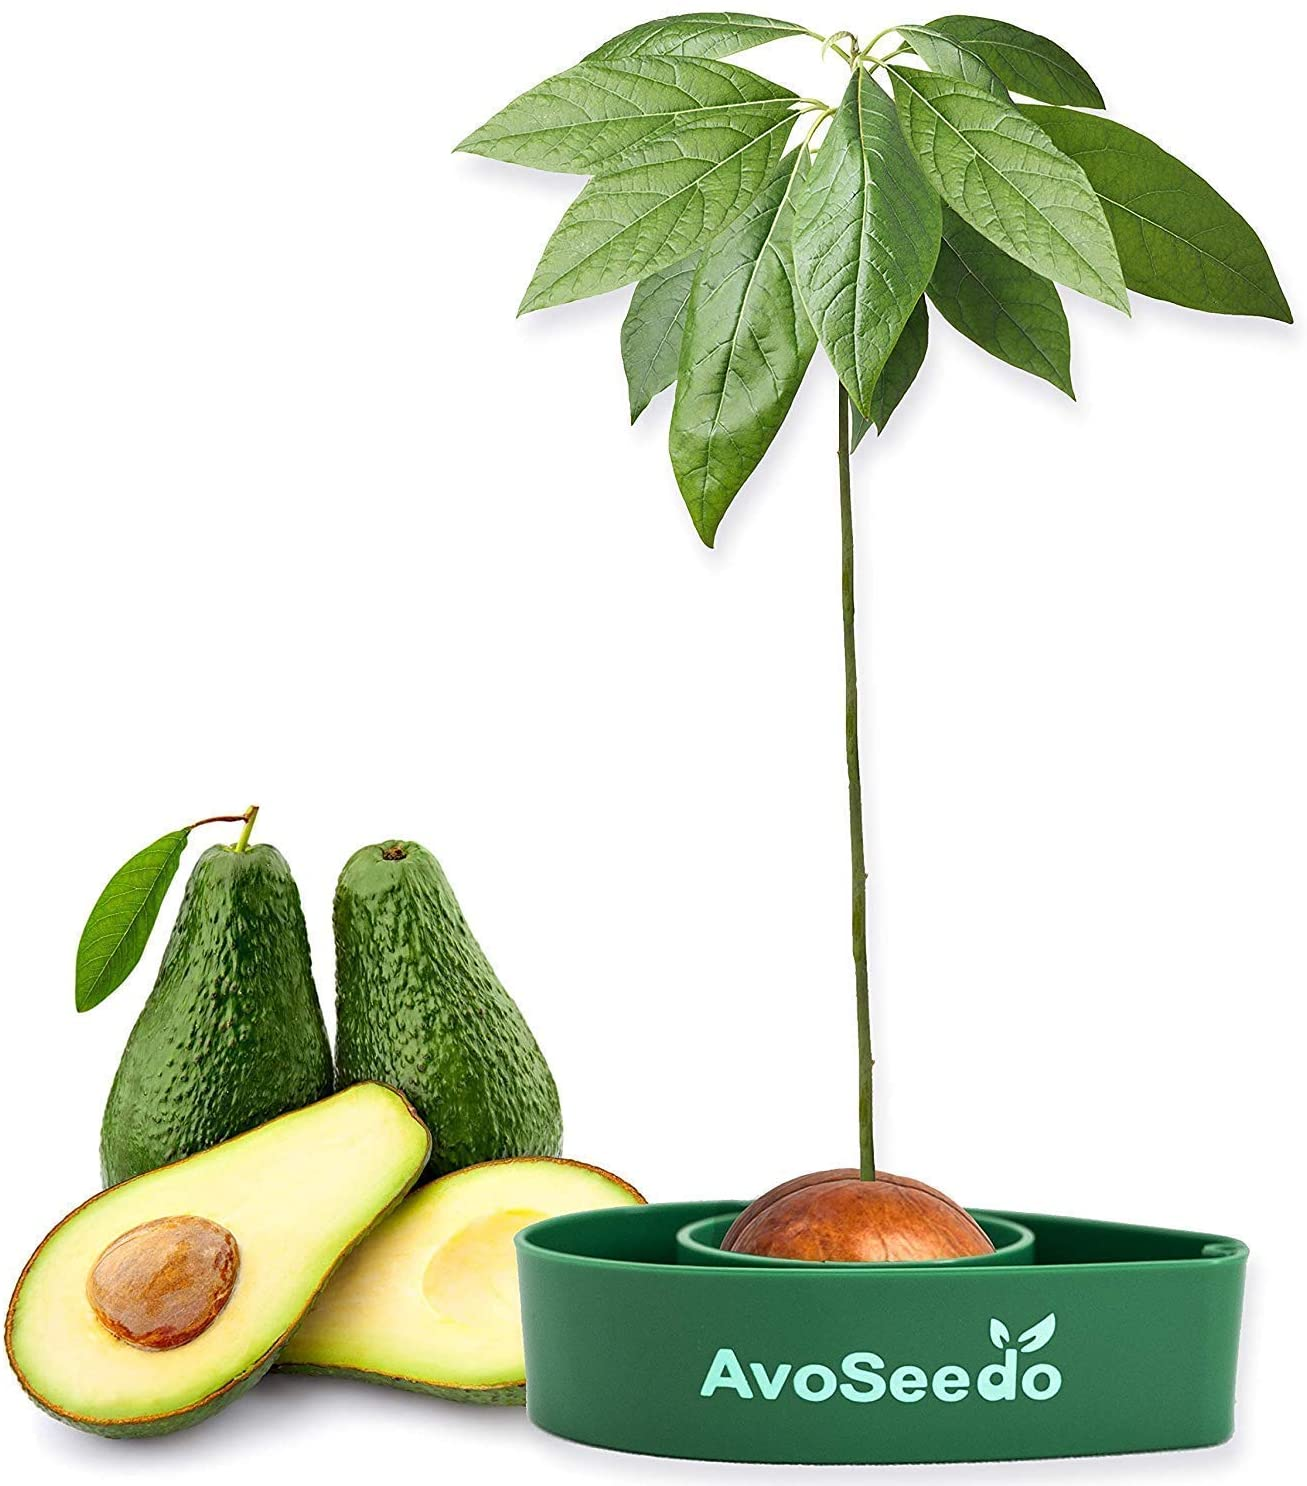 AvoSeedo Avocado Tree Growing Kit